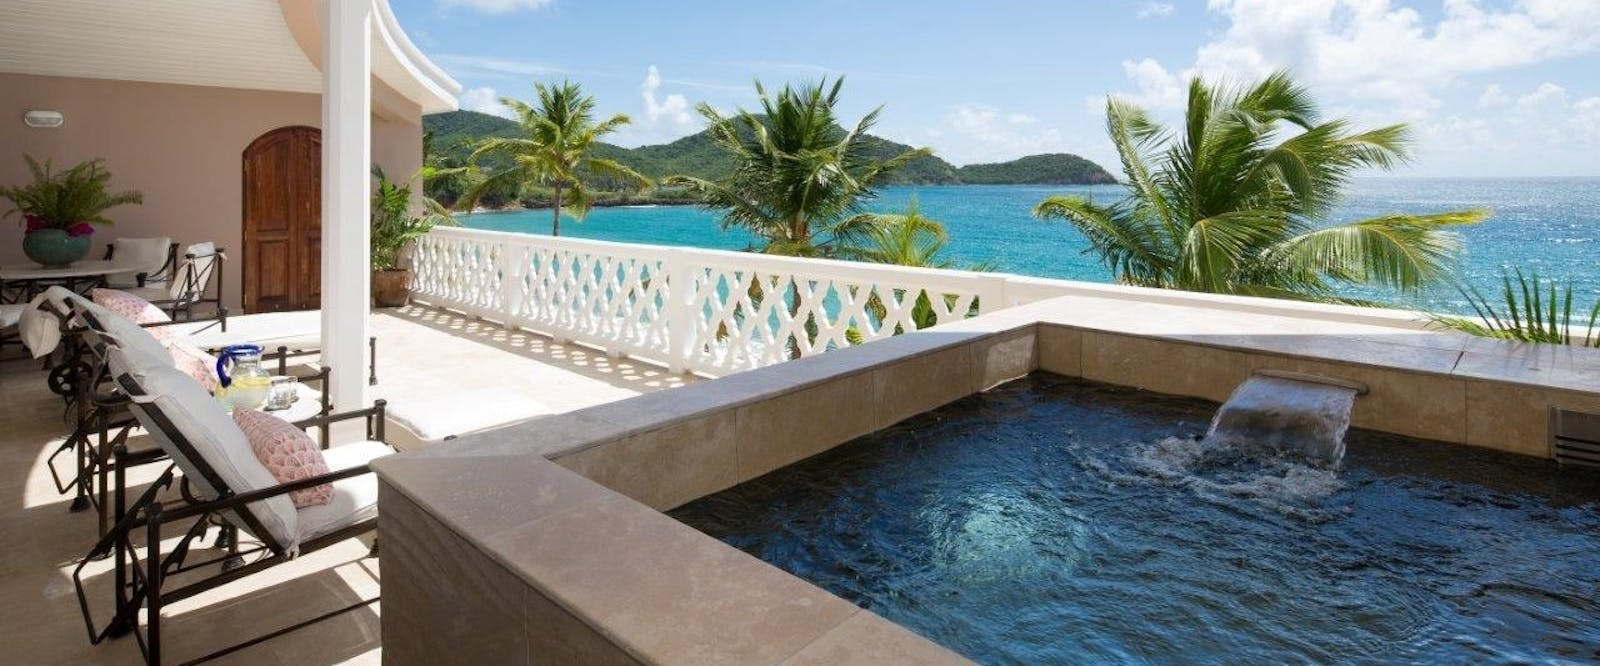 Luxurious Suite Terrace with Private Jacuzzi at Curtain Bluff, Antigua